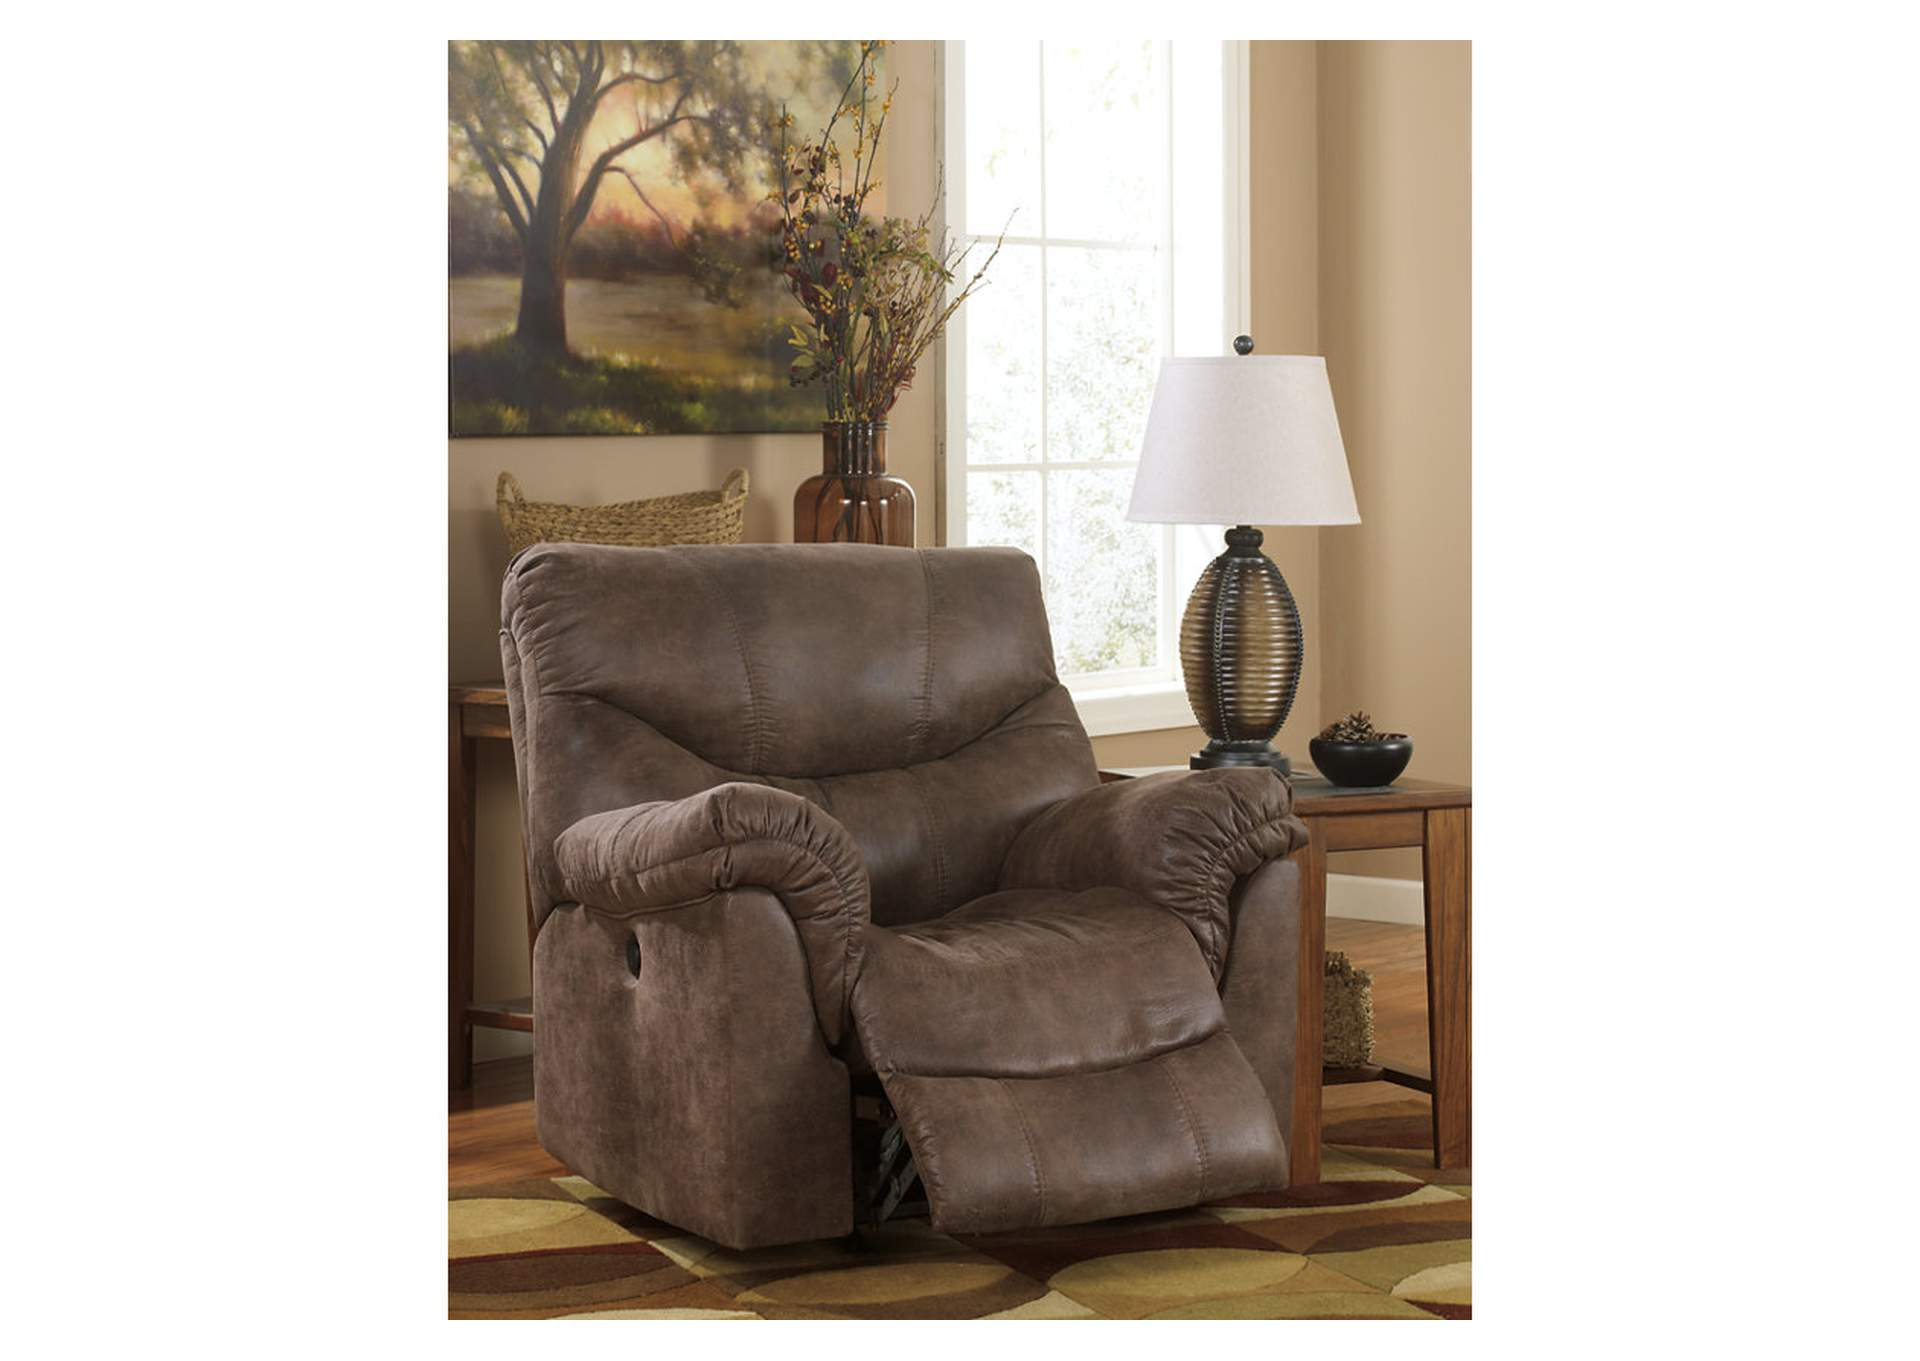 Alzena Gunsmoke Power Rocker Recliner,Signature Design By Ashley